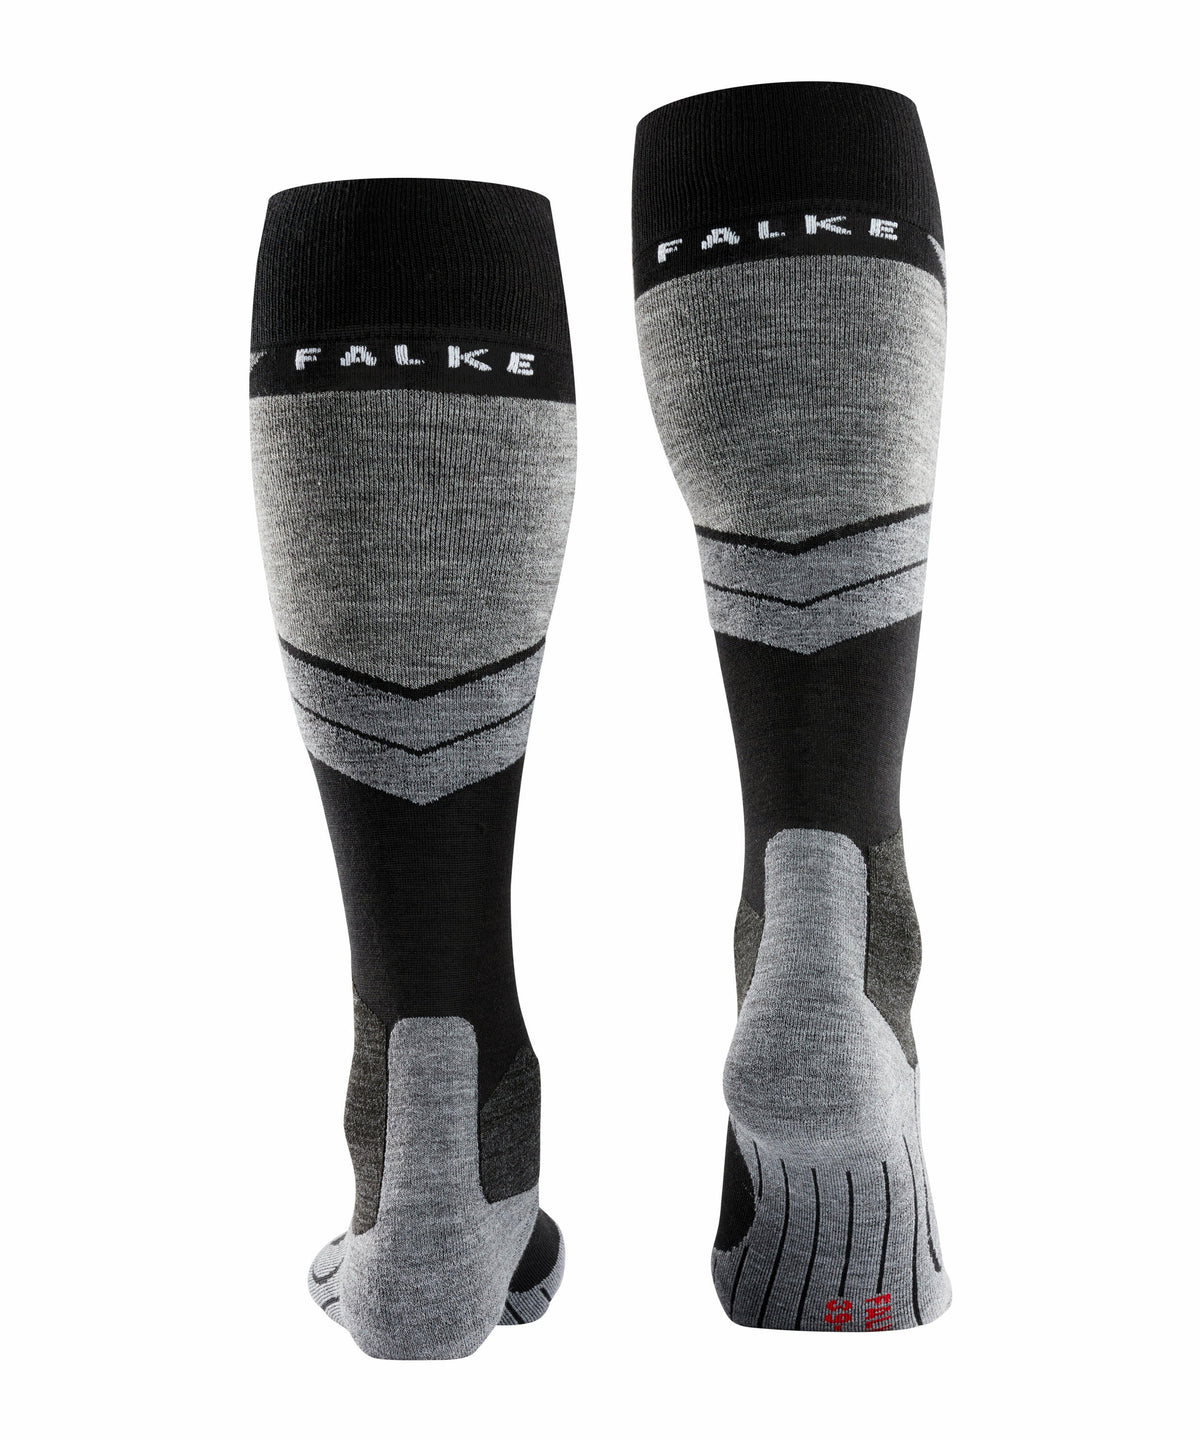 Rear view of the Falke SK4 Womens Ski Socks in Black